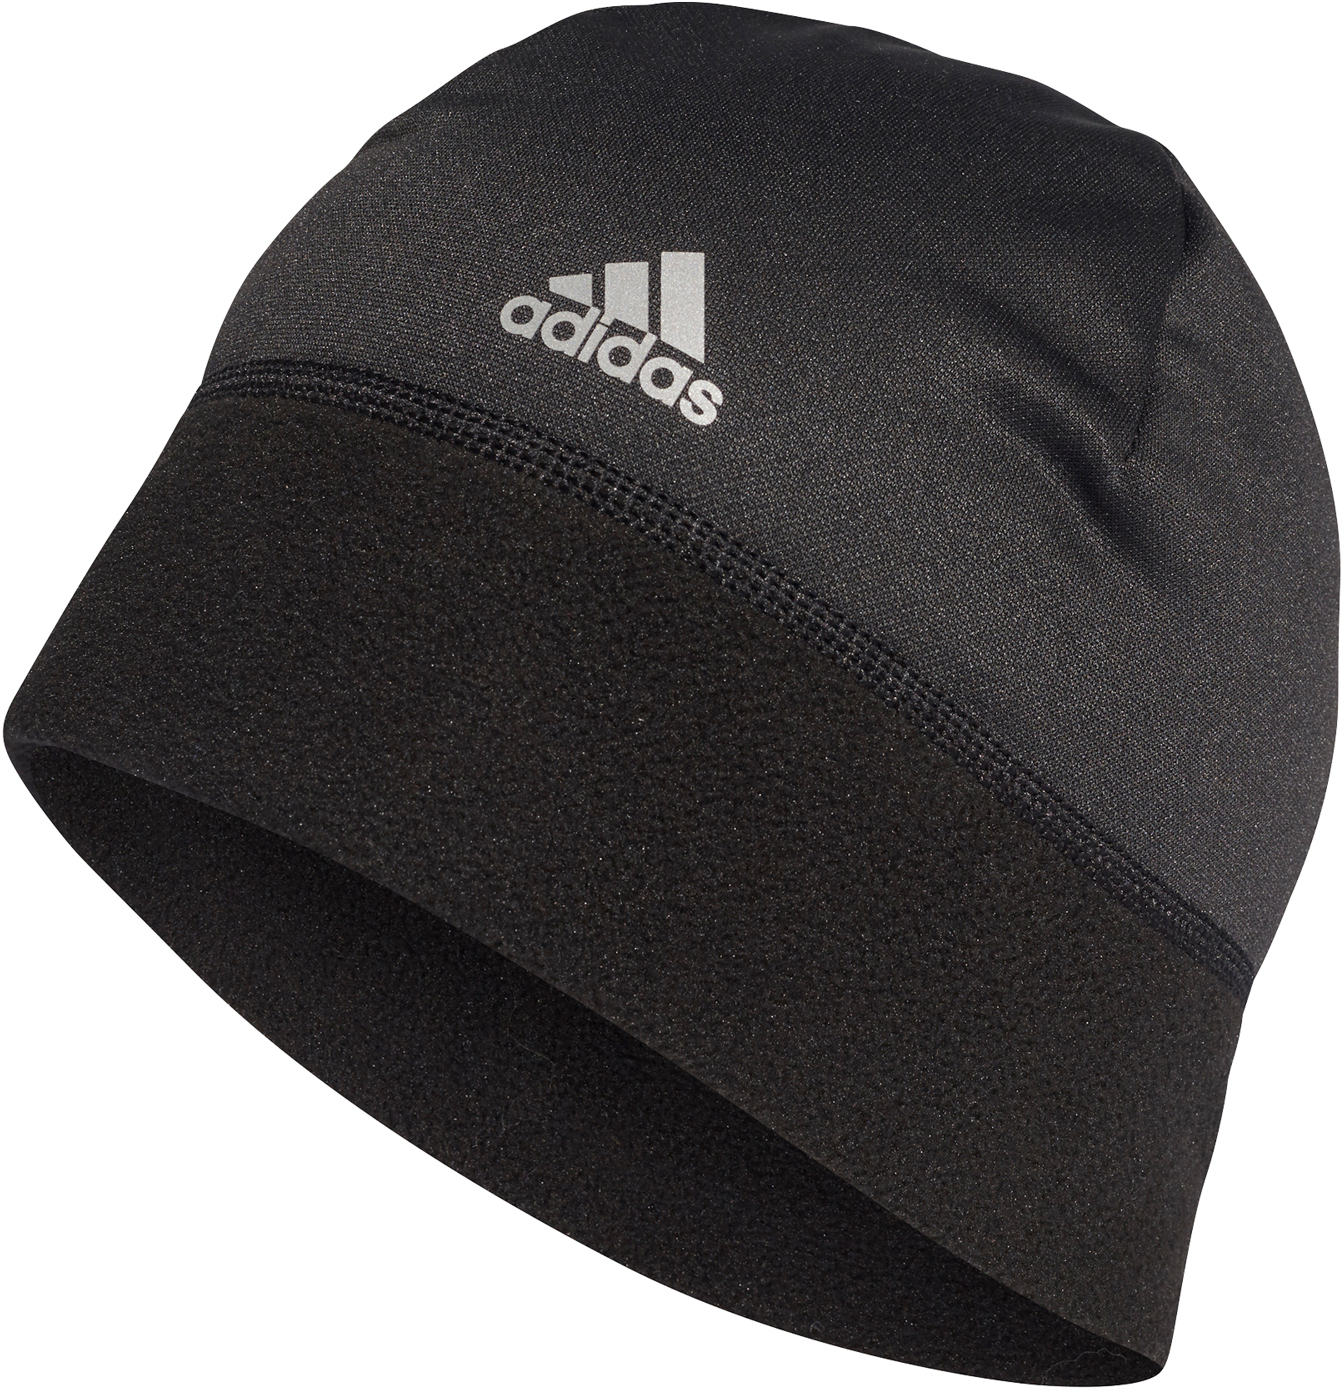 adidas fleece cap